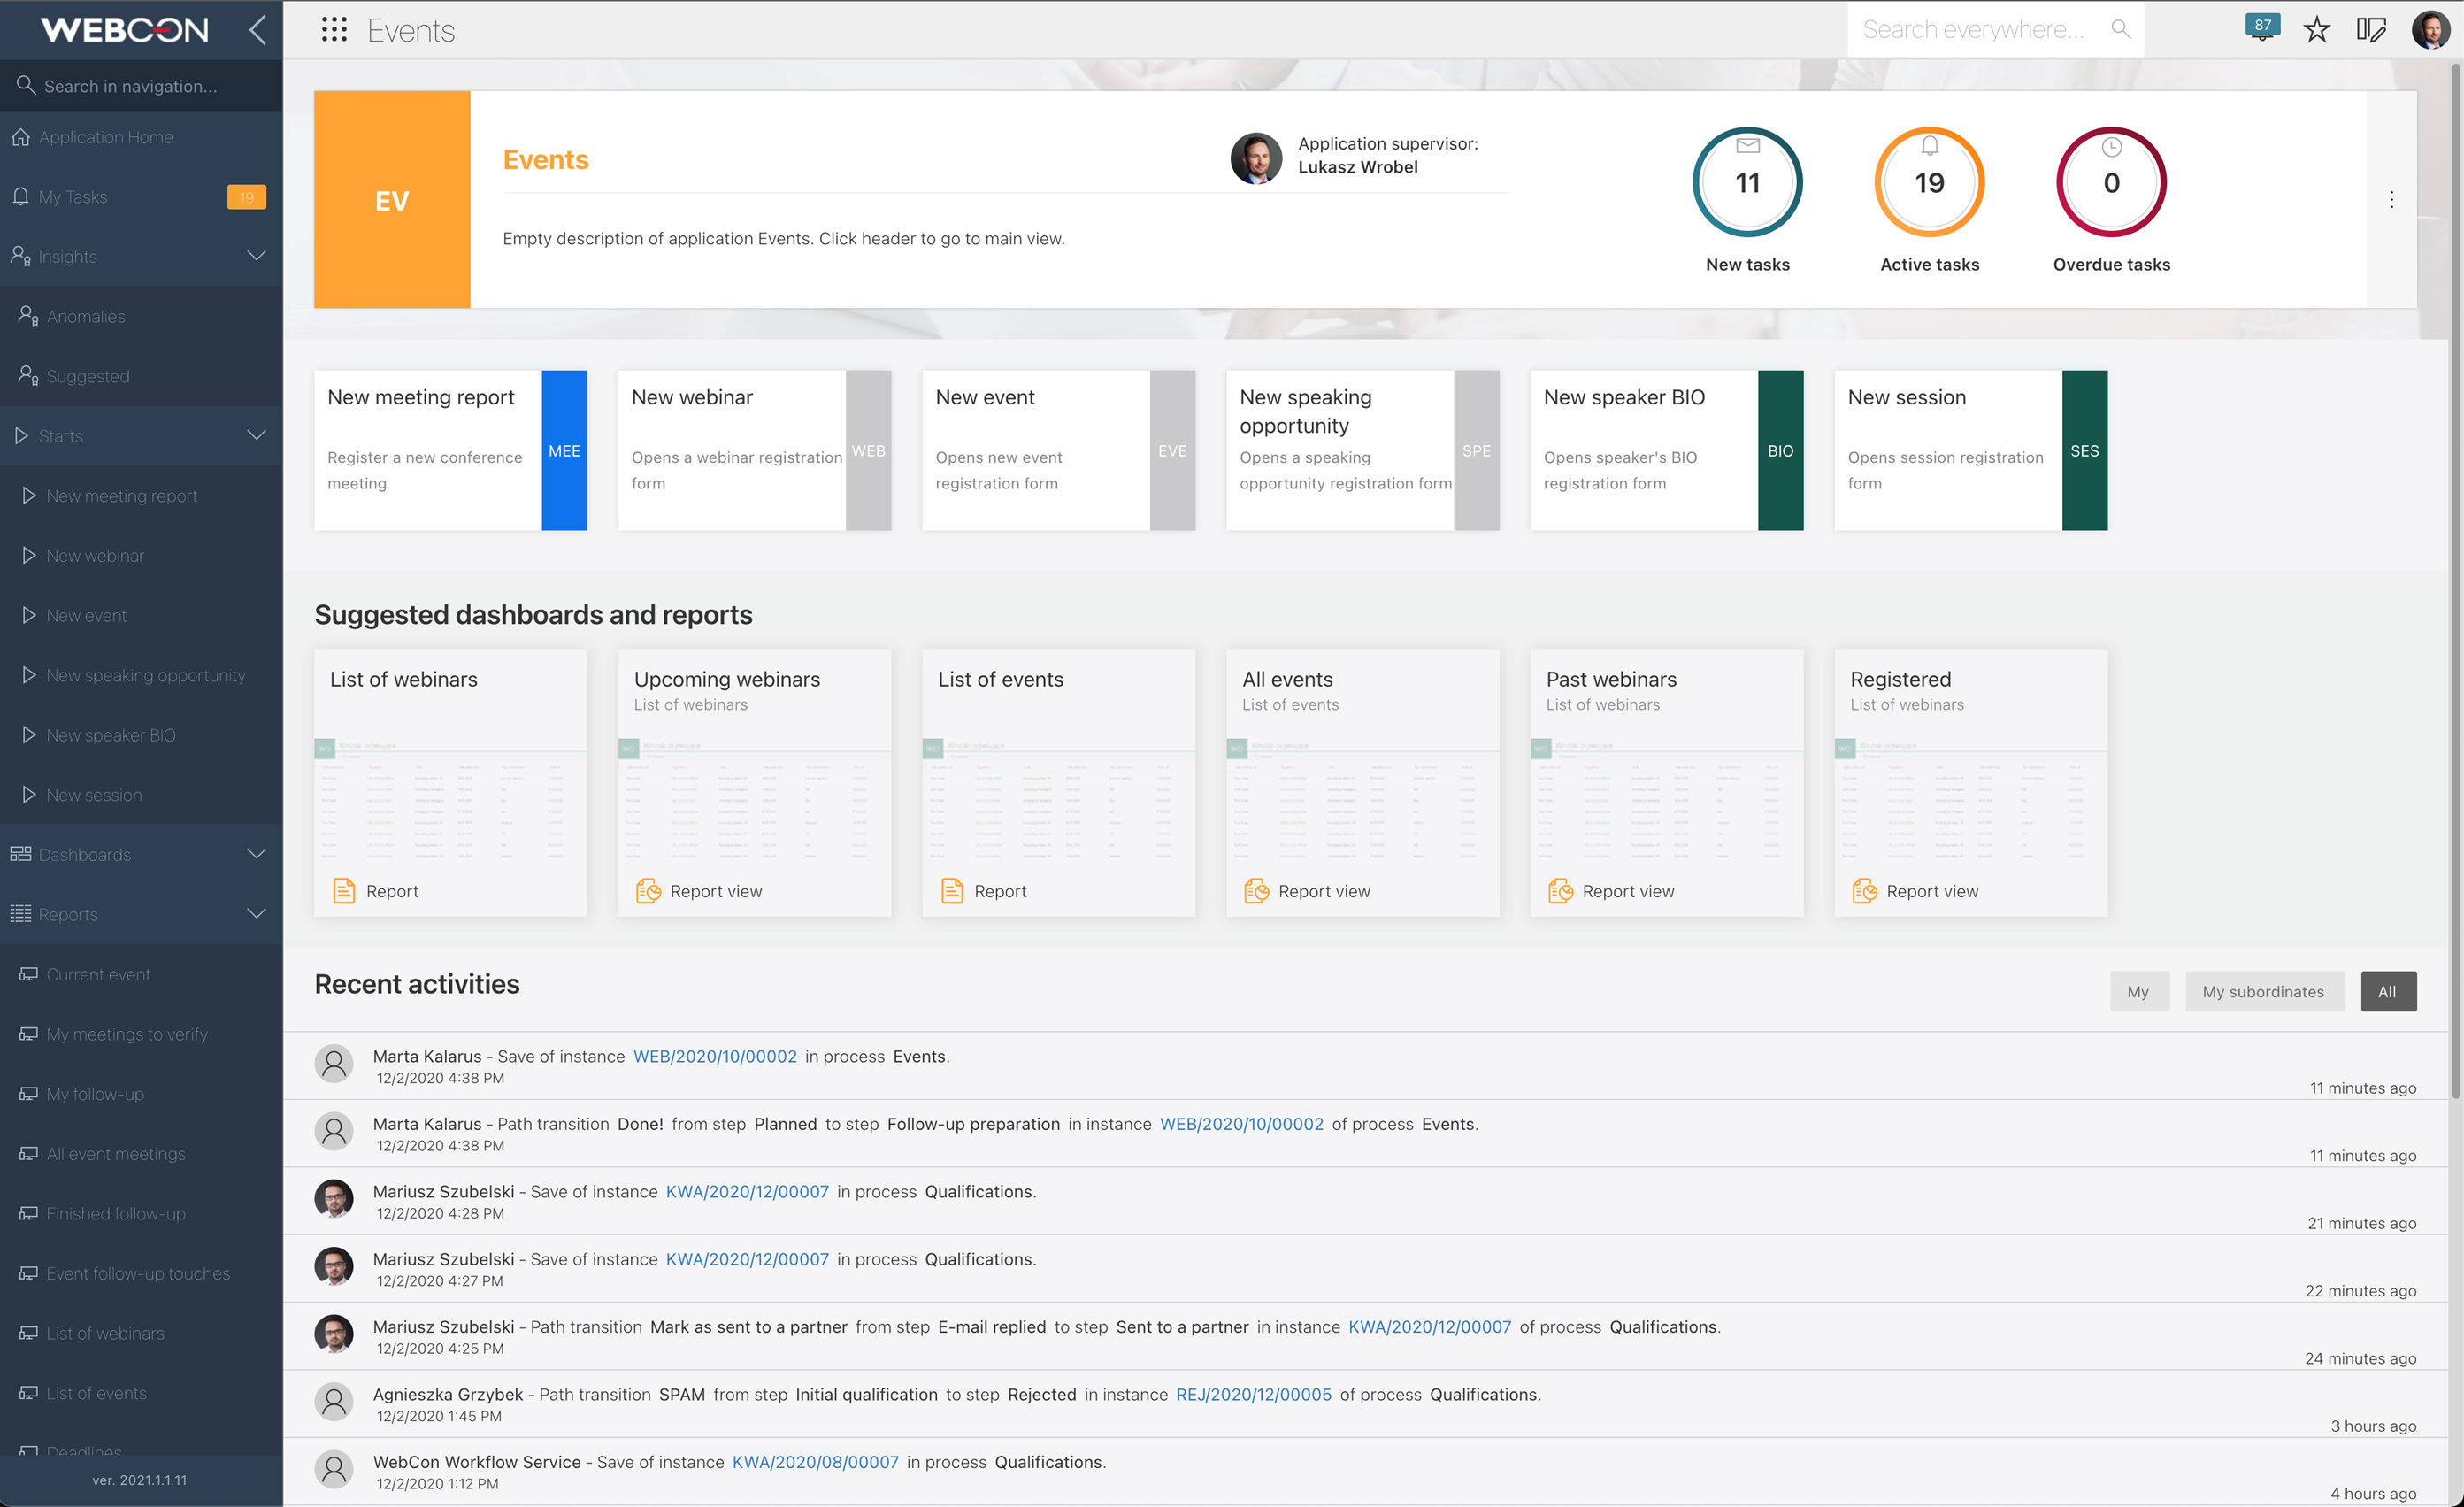 WEBCON BPS 2021 - new release of Low-Code Application Development Platform for Workflow and Process Automation